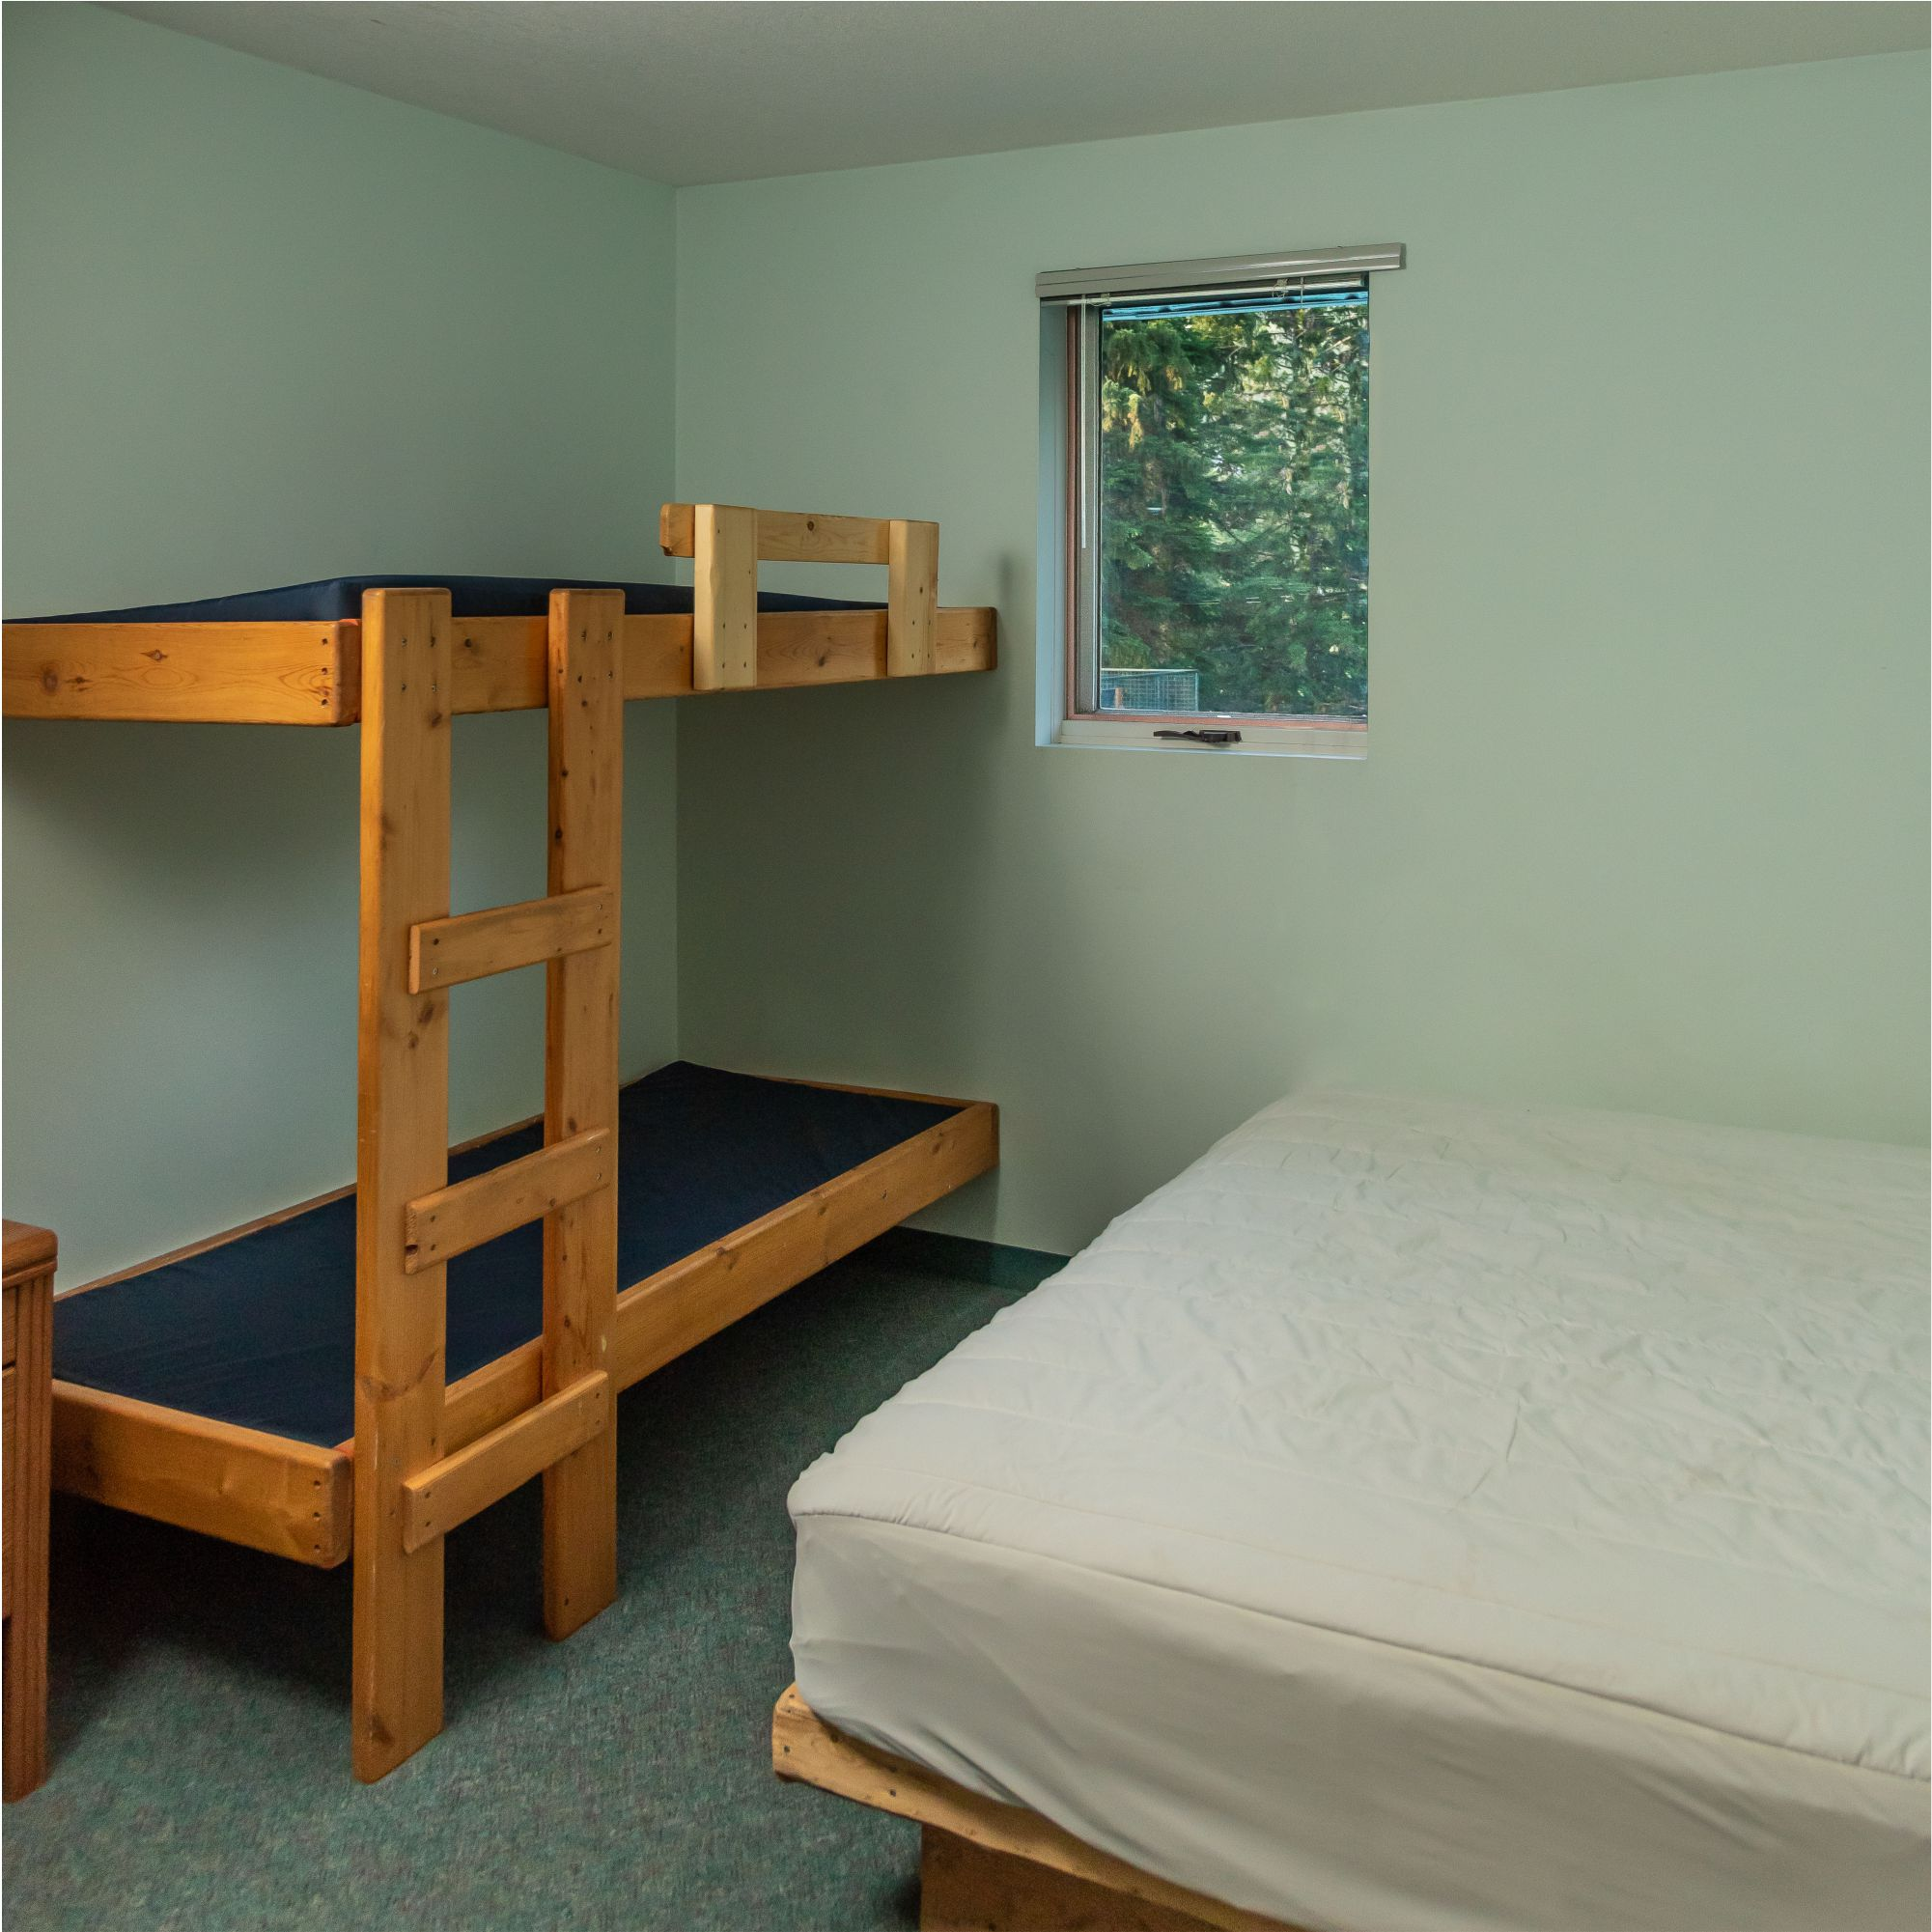 ILCRC also has 16 upstairs dormitories for those who prefer privacy!